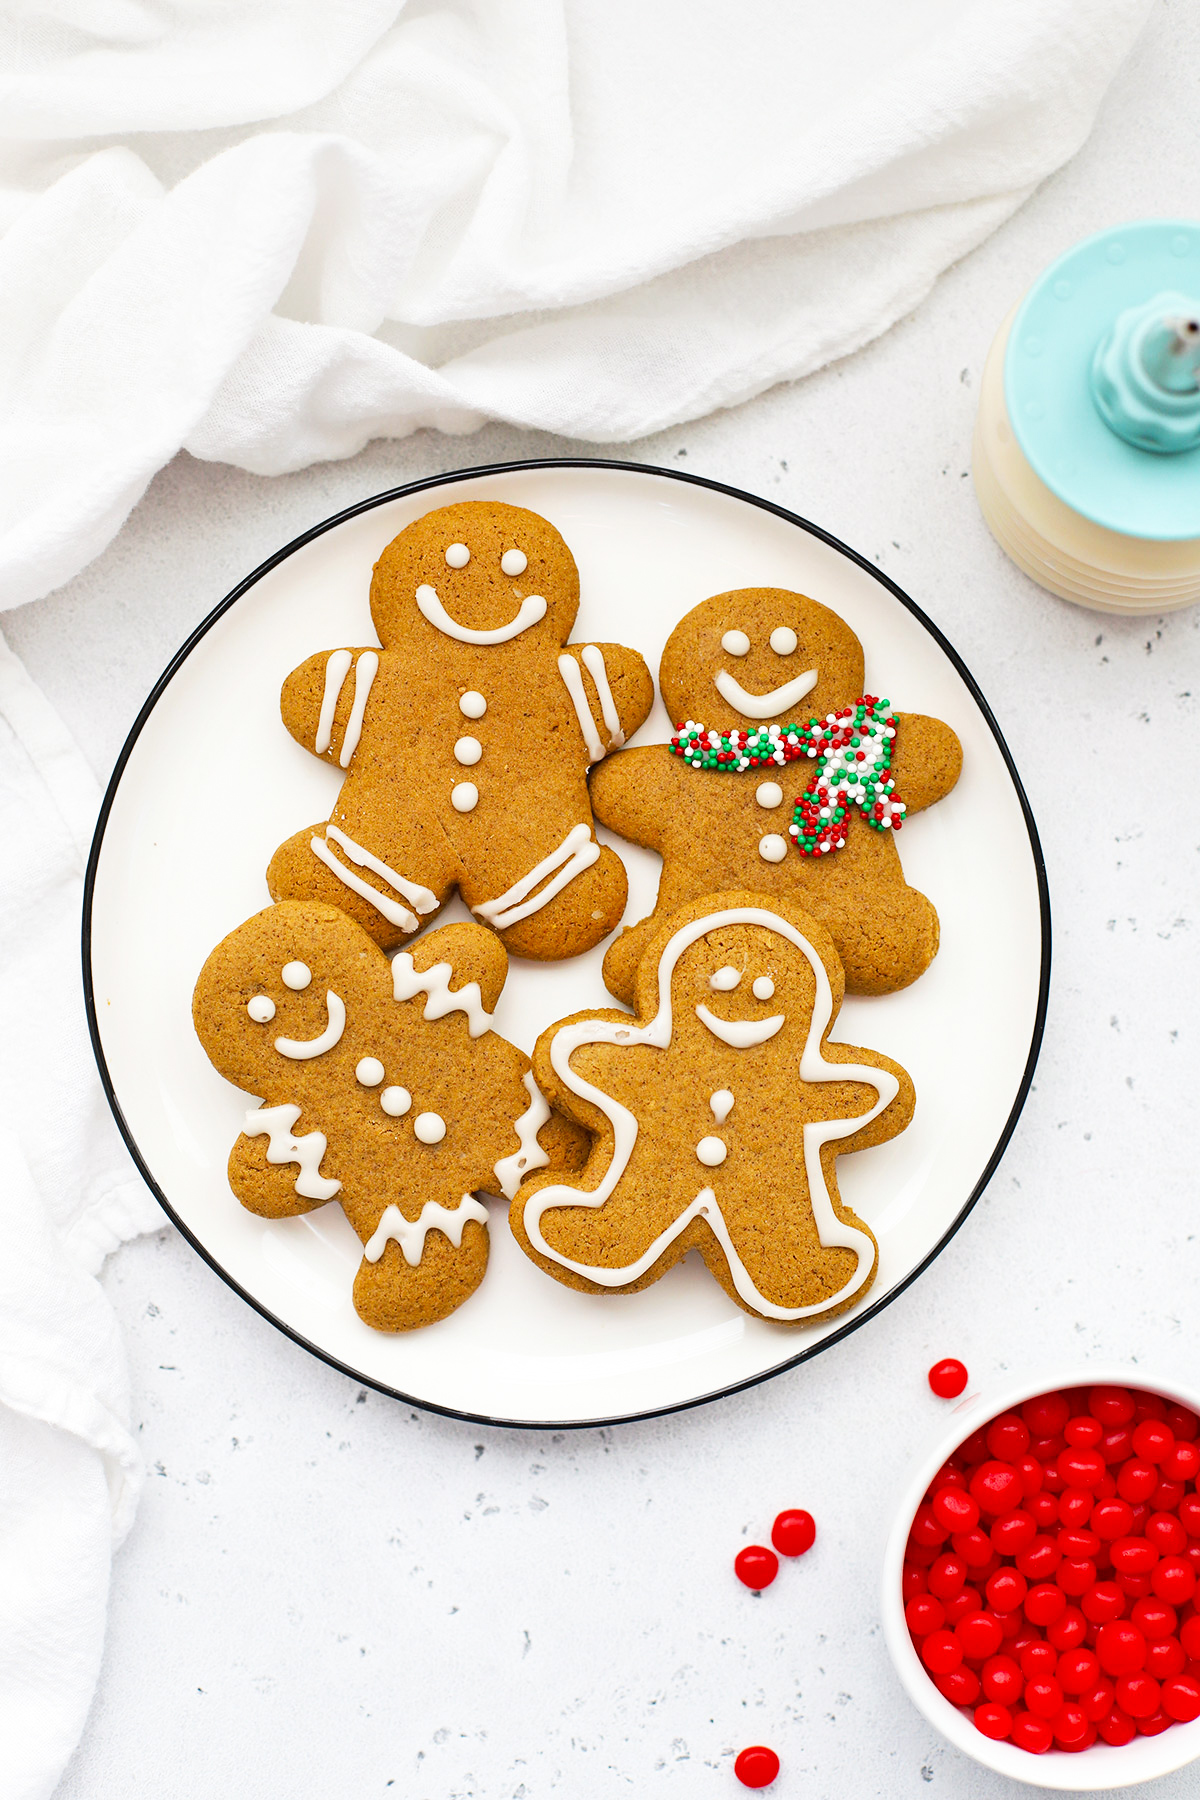 Overhead view of a plate of decorated gluten free gingerbread men cookies on a white background